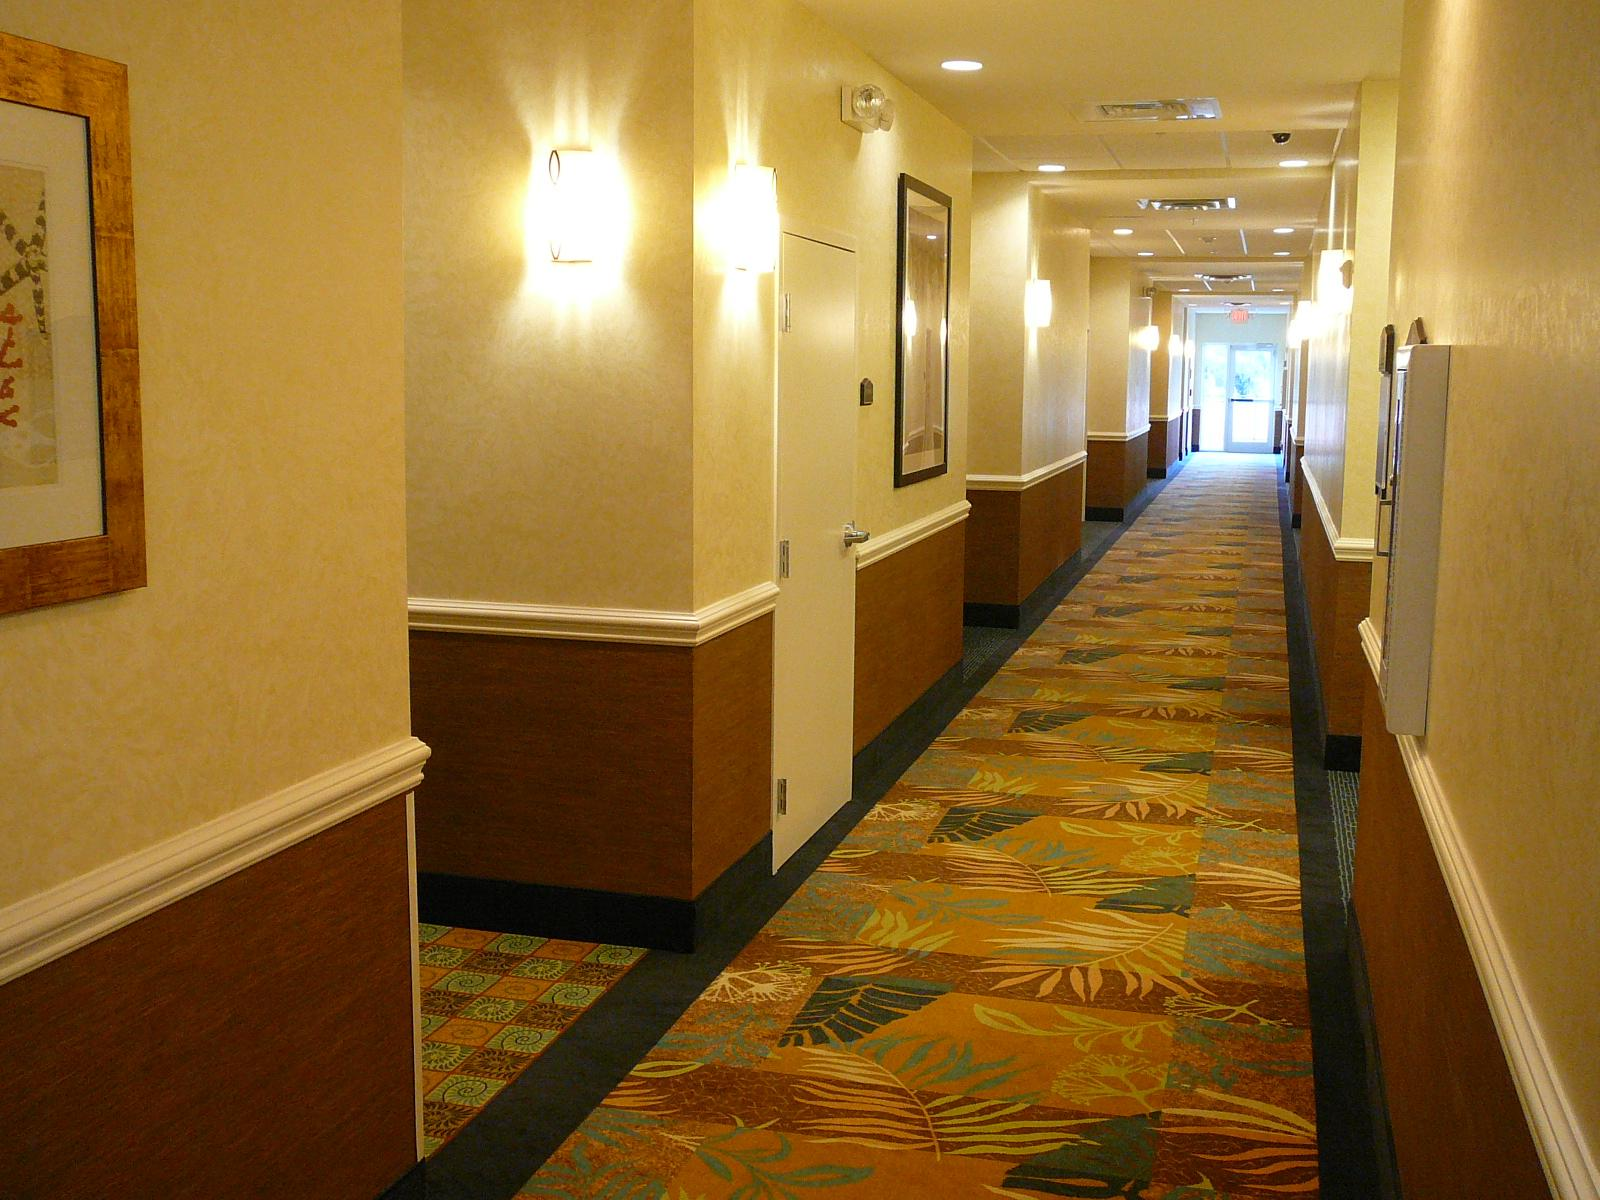 1000 images about corridor design on pinterest for Hotel wall design